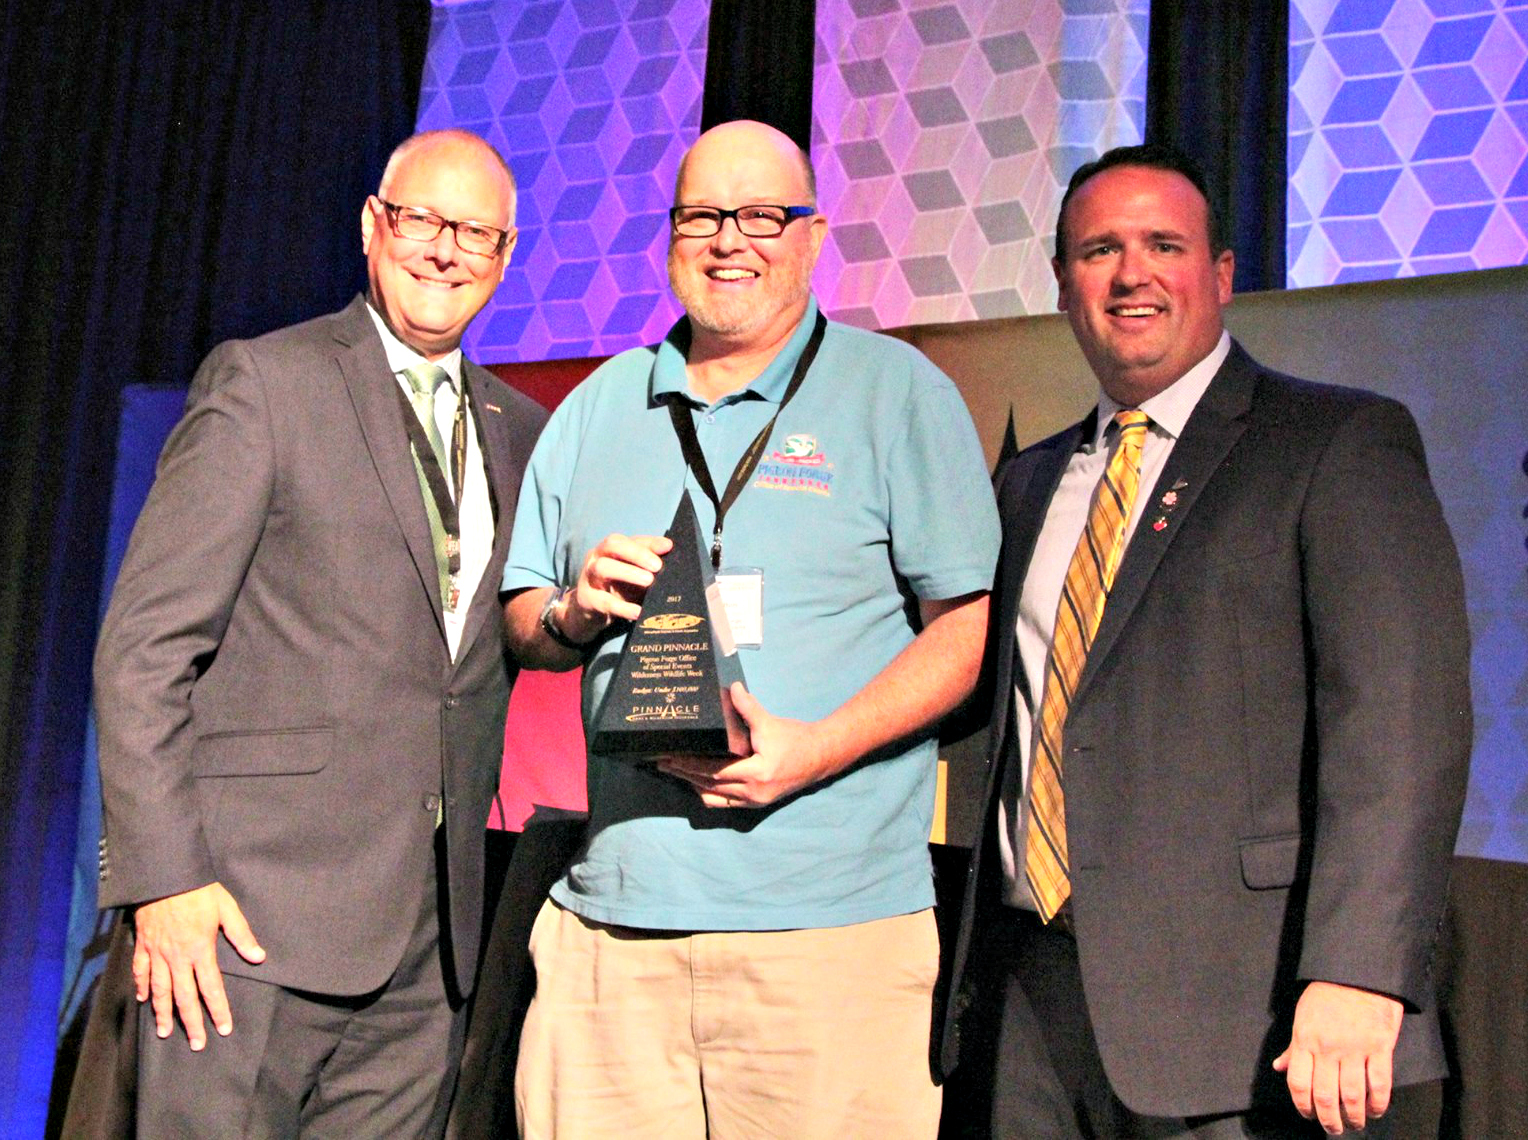 Stephen King, Des Moines Arts Festival executive director (left), and Andrew Vandepopulier, representing IFEA sponsor Haas & Wilkerson Insurance, congratulate Pigeon Forge Office of Special Events Manager Butch Helton on the city's second Grand Pinnacle Award for Wilderness Wildlife Week.